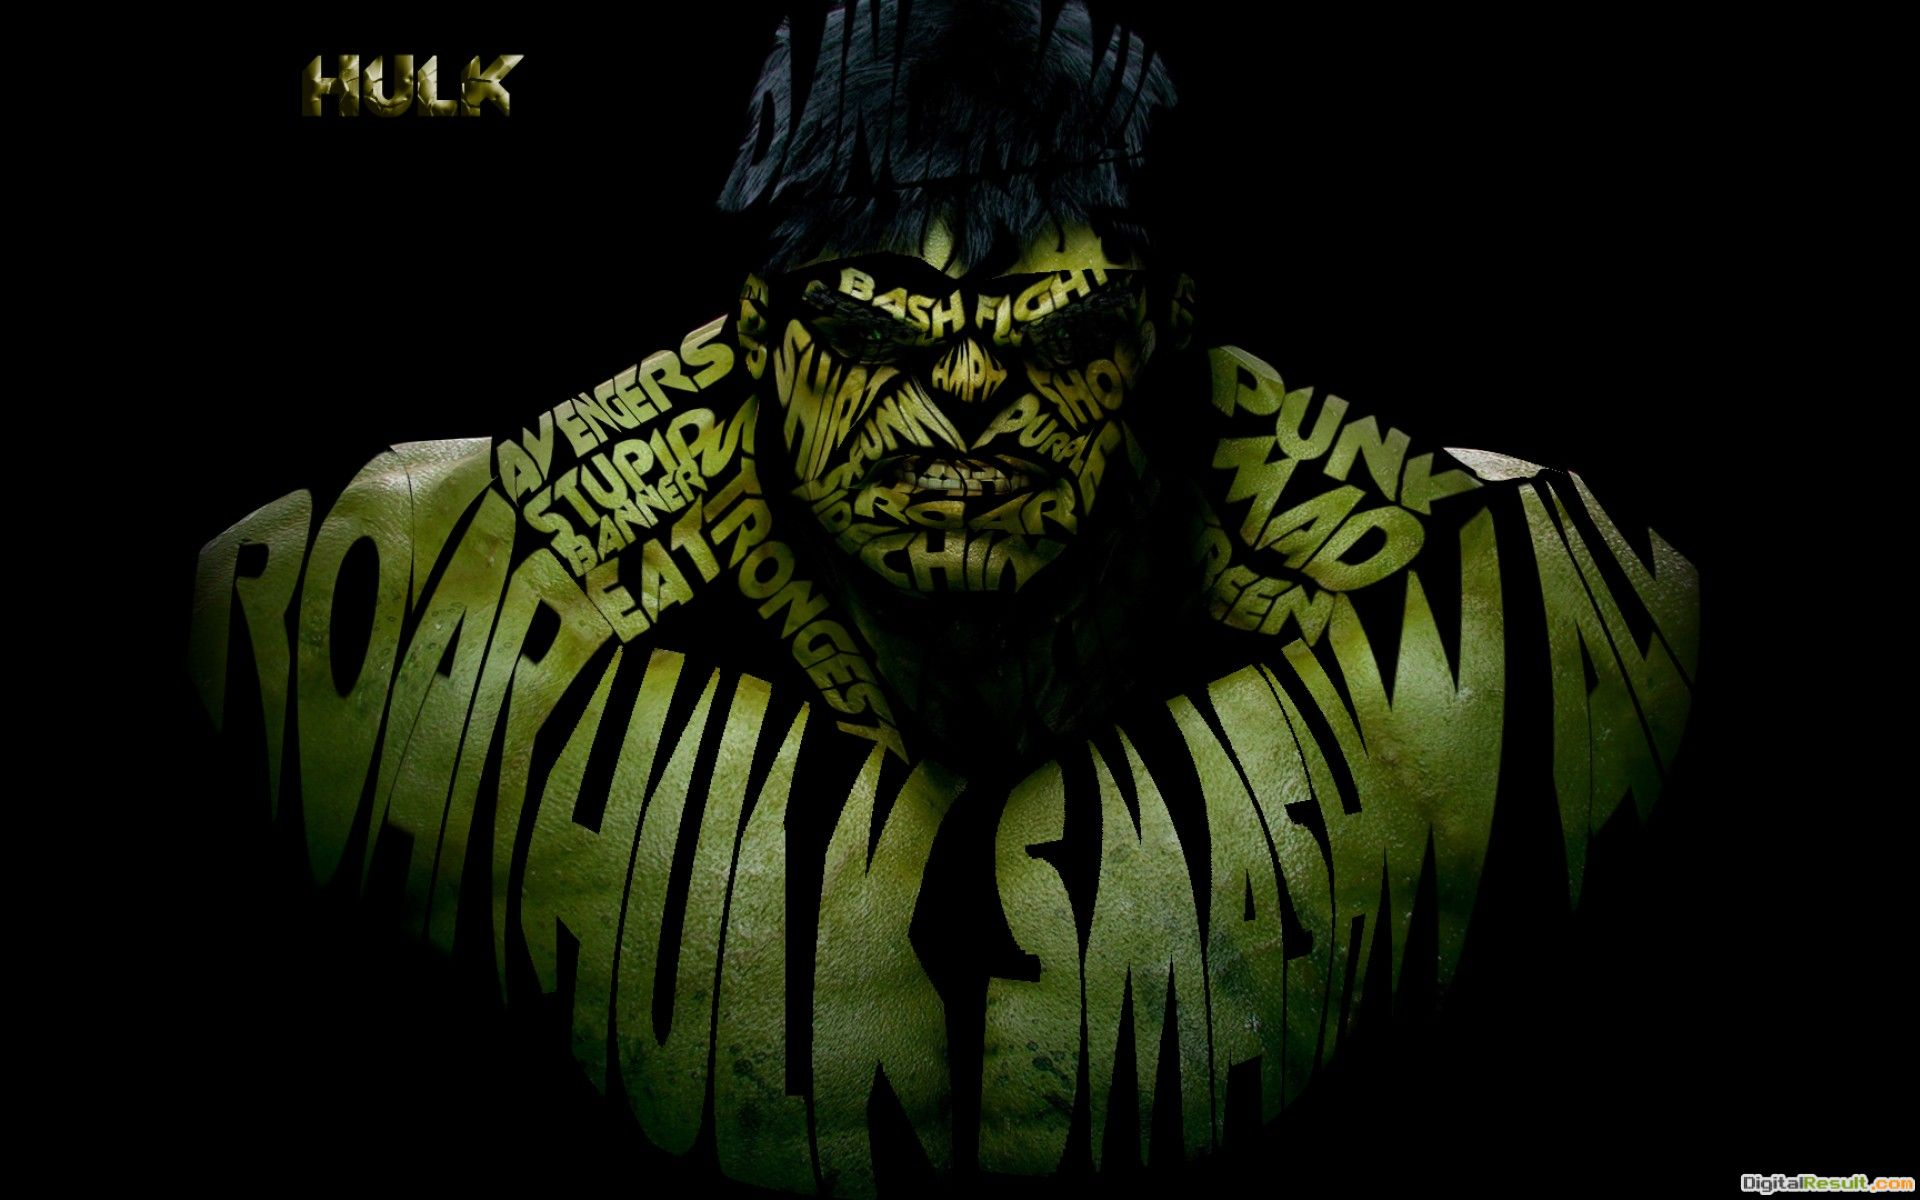 Free Desktop Wallpapers48+ : Wide Hulk HD HDQ Picturesp 23 179